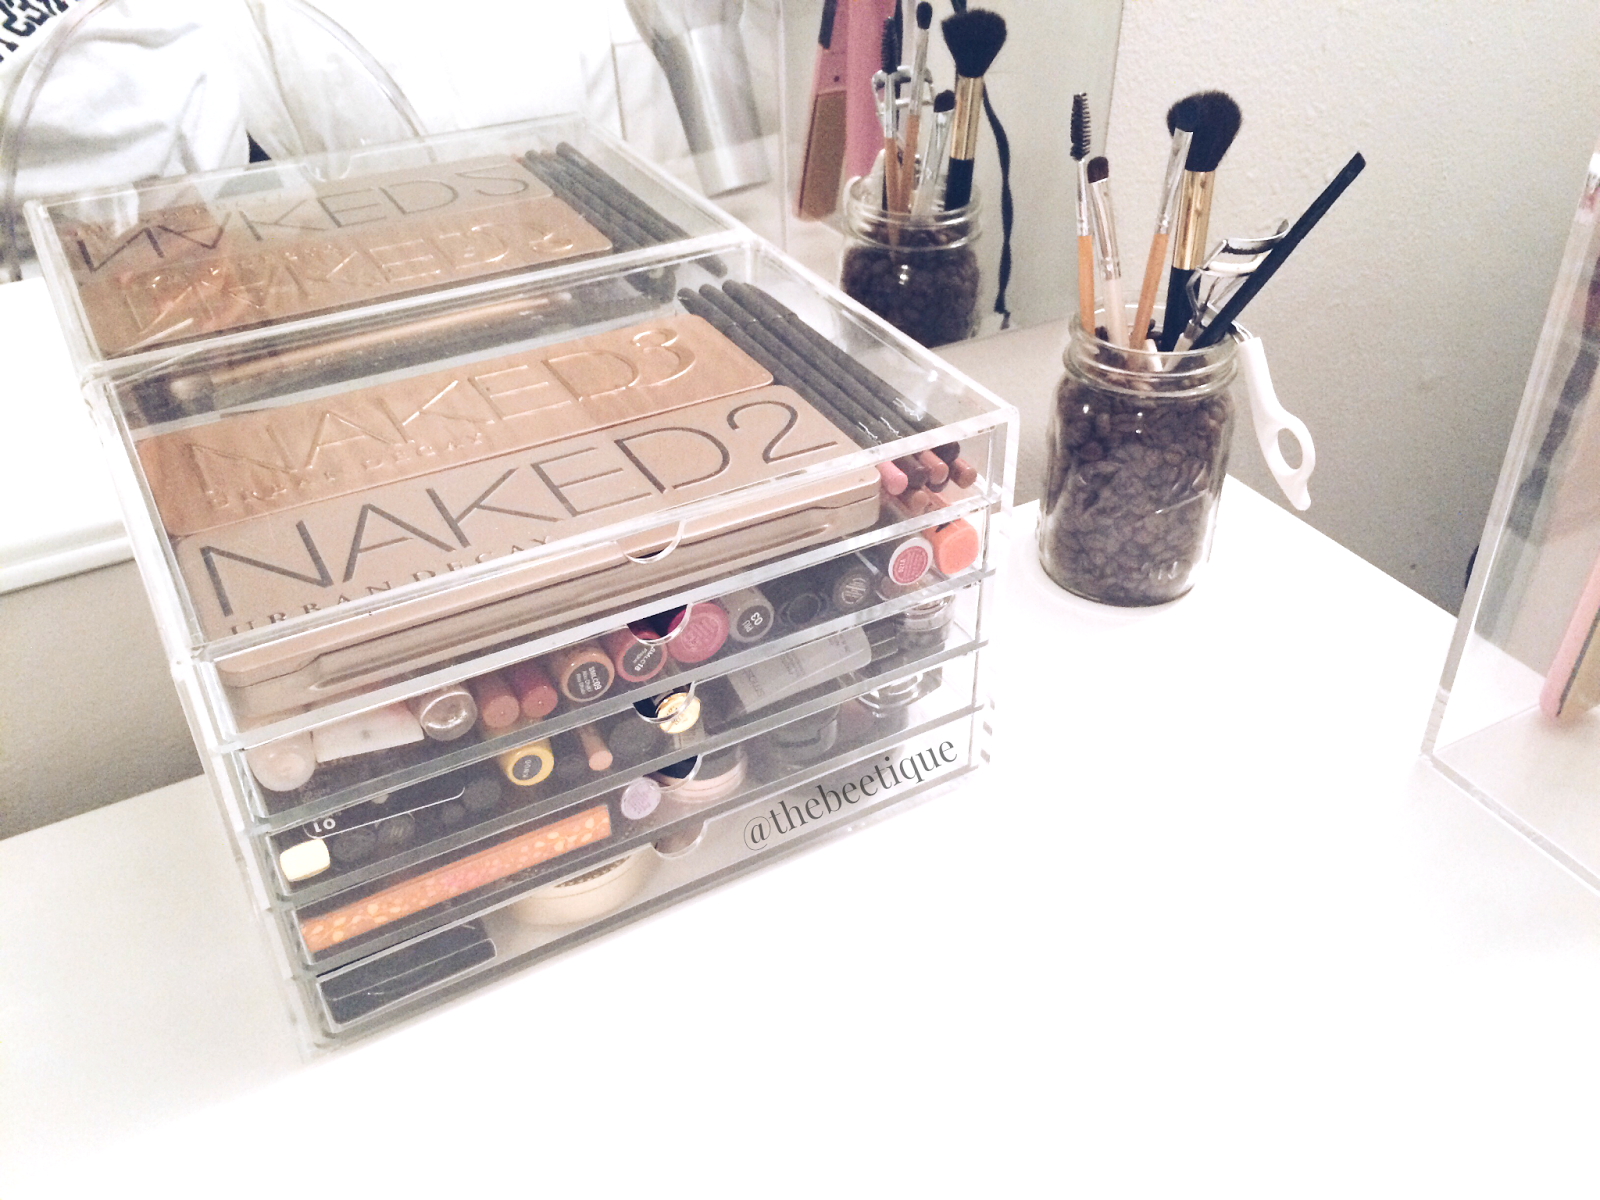 The beetique diy ikea vanity trends Makeup drawer organizer ikea